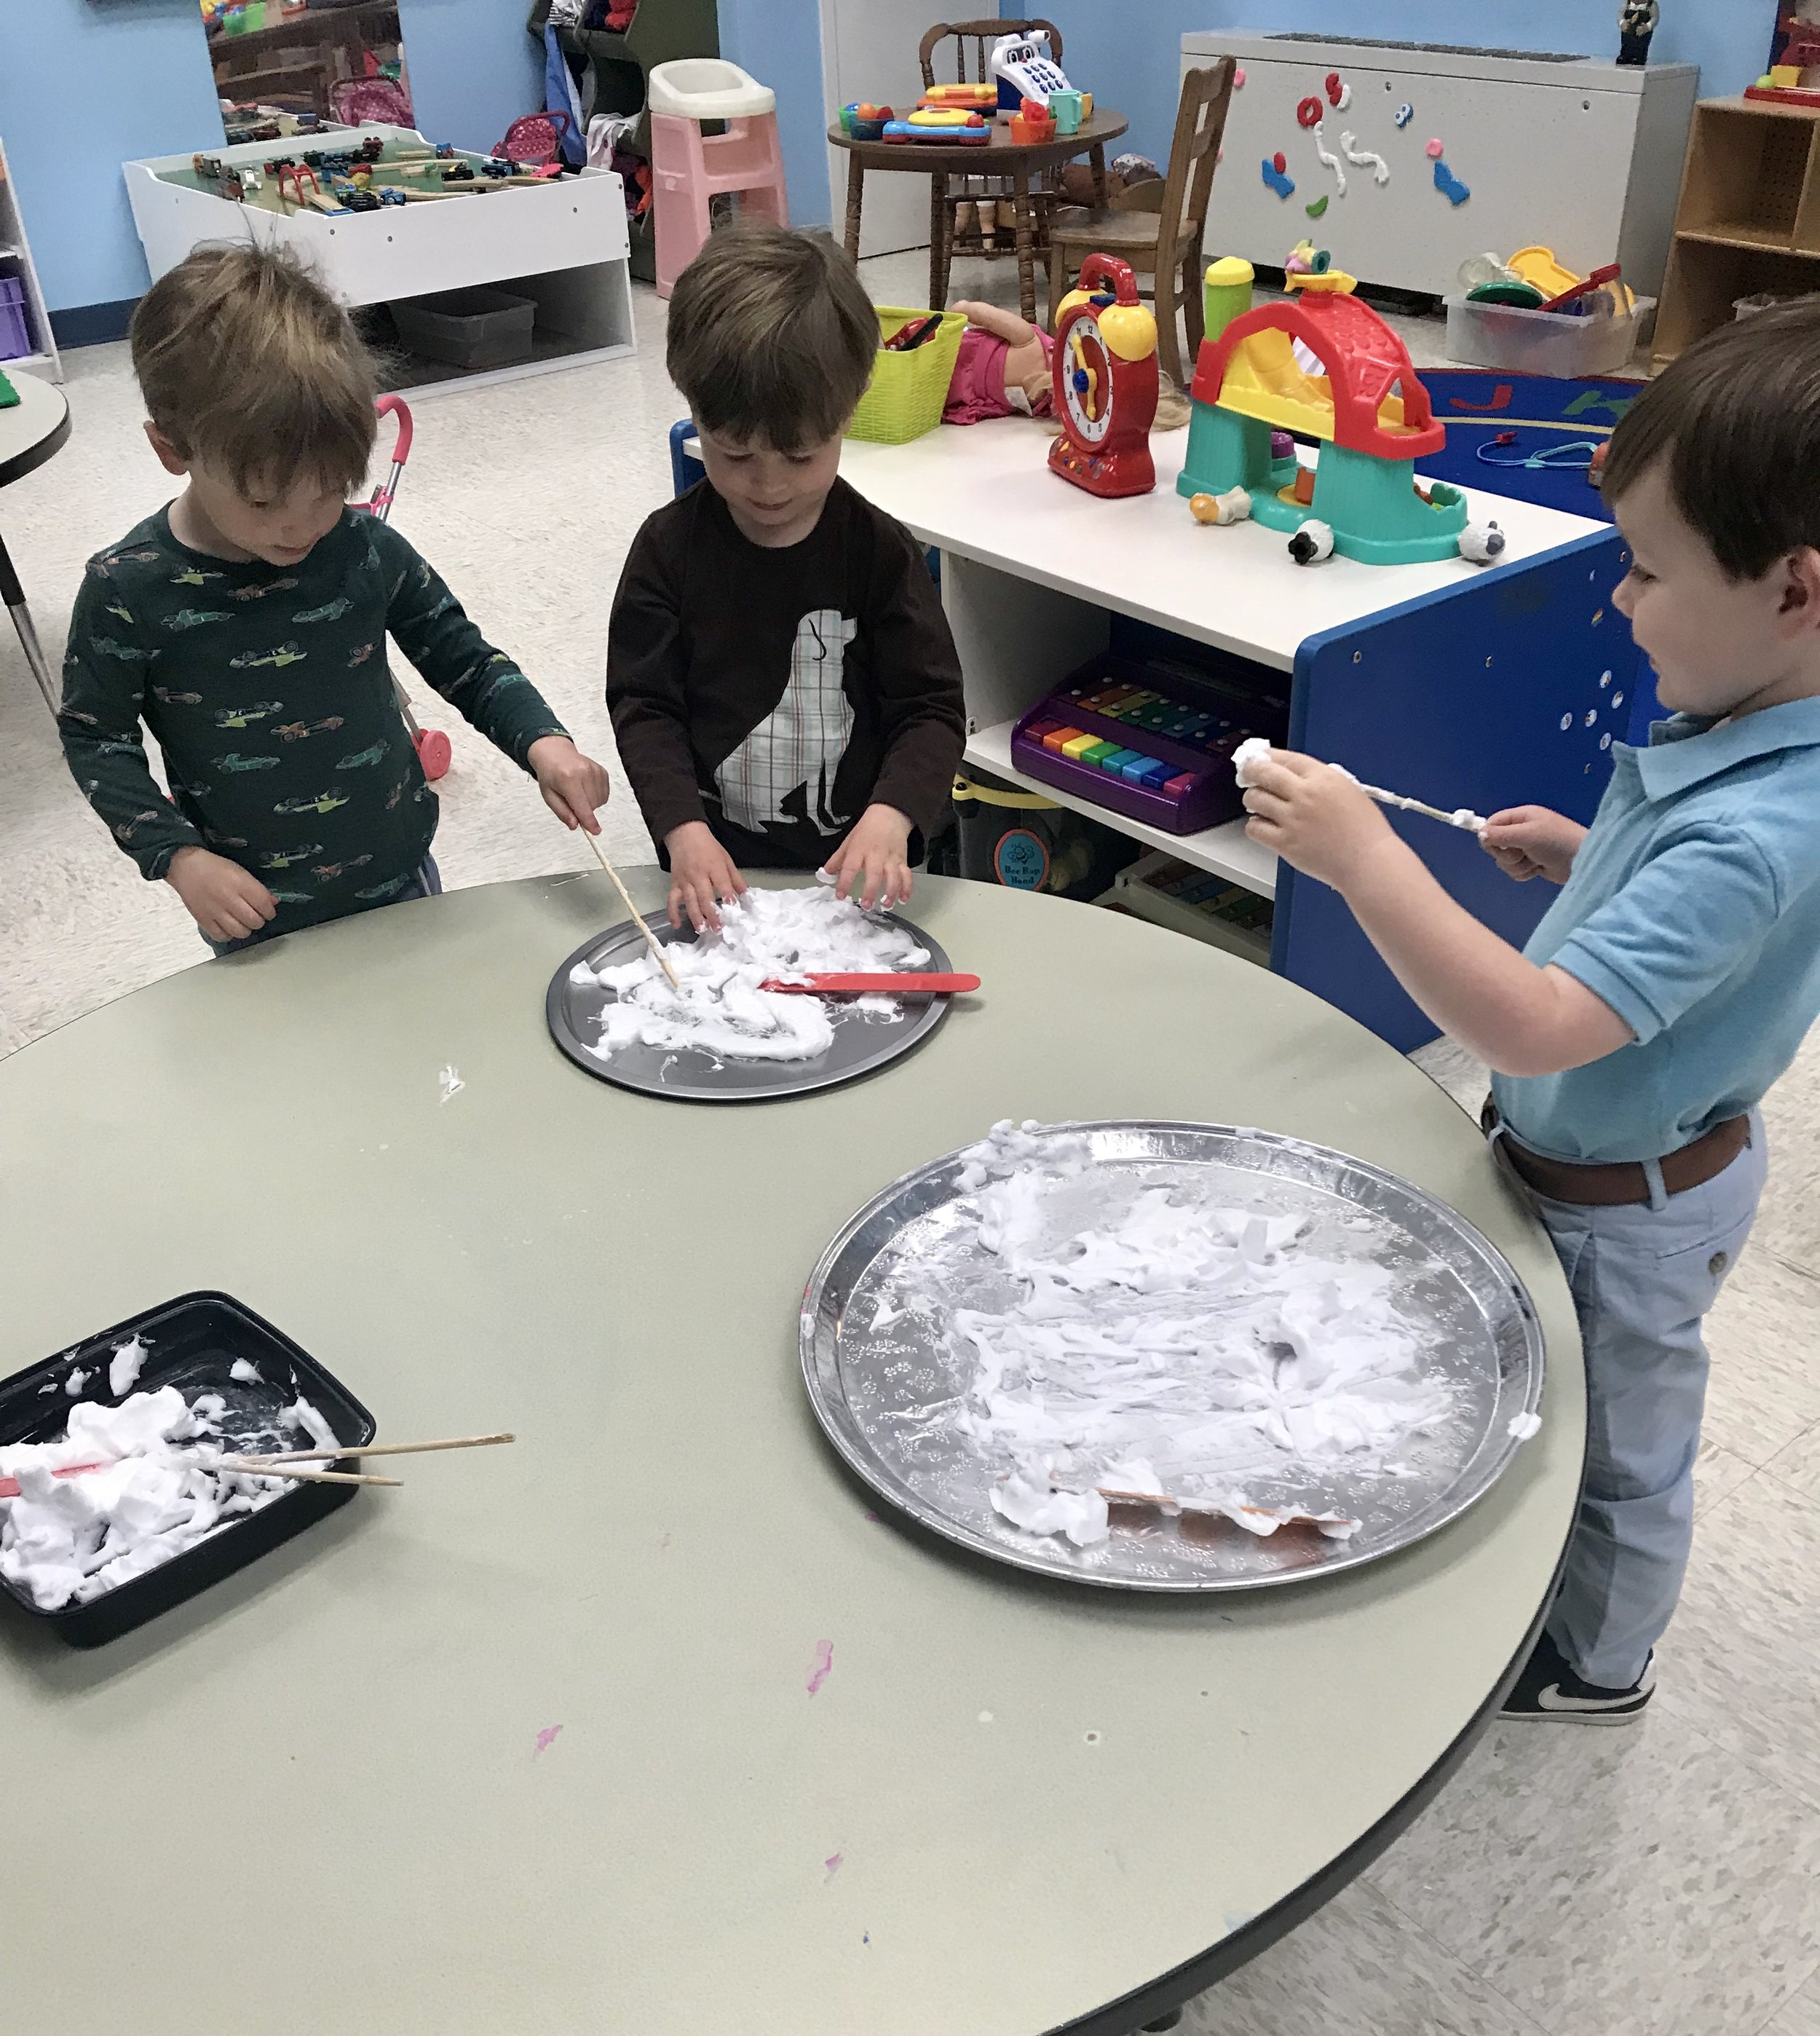 Practicing our first letters by drawing in shaving cream.